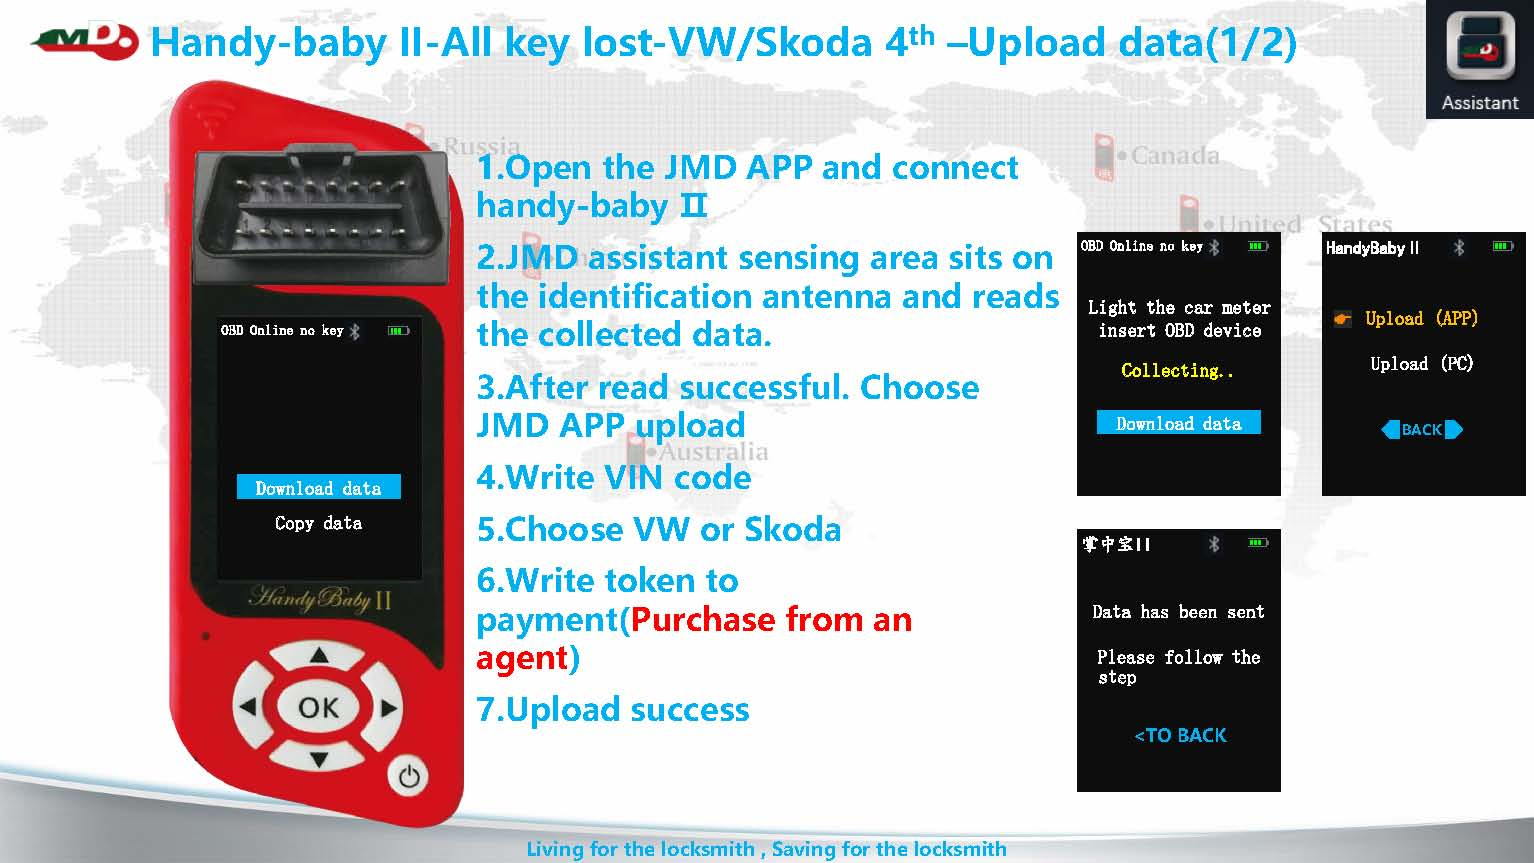 jmd-handy-baby-2-and -jmd-assistant-guide-08